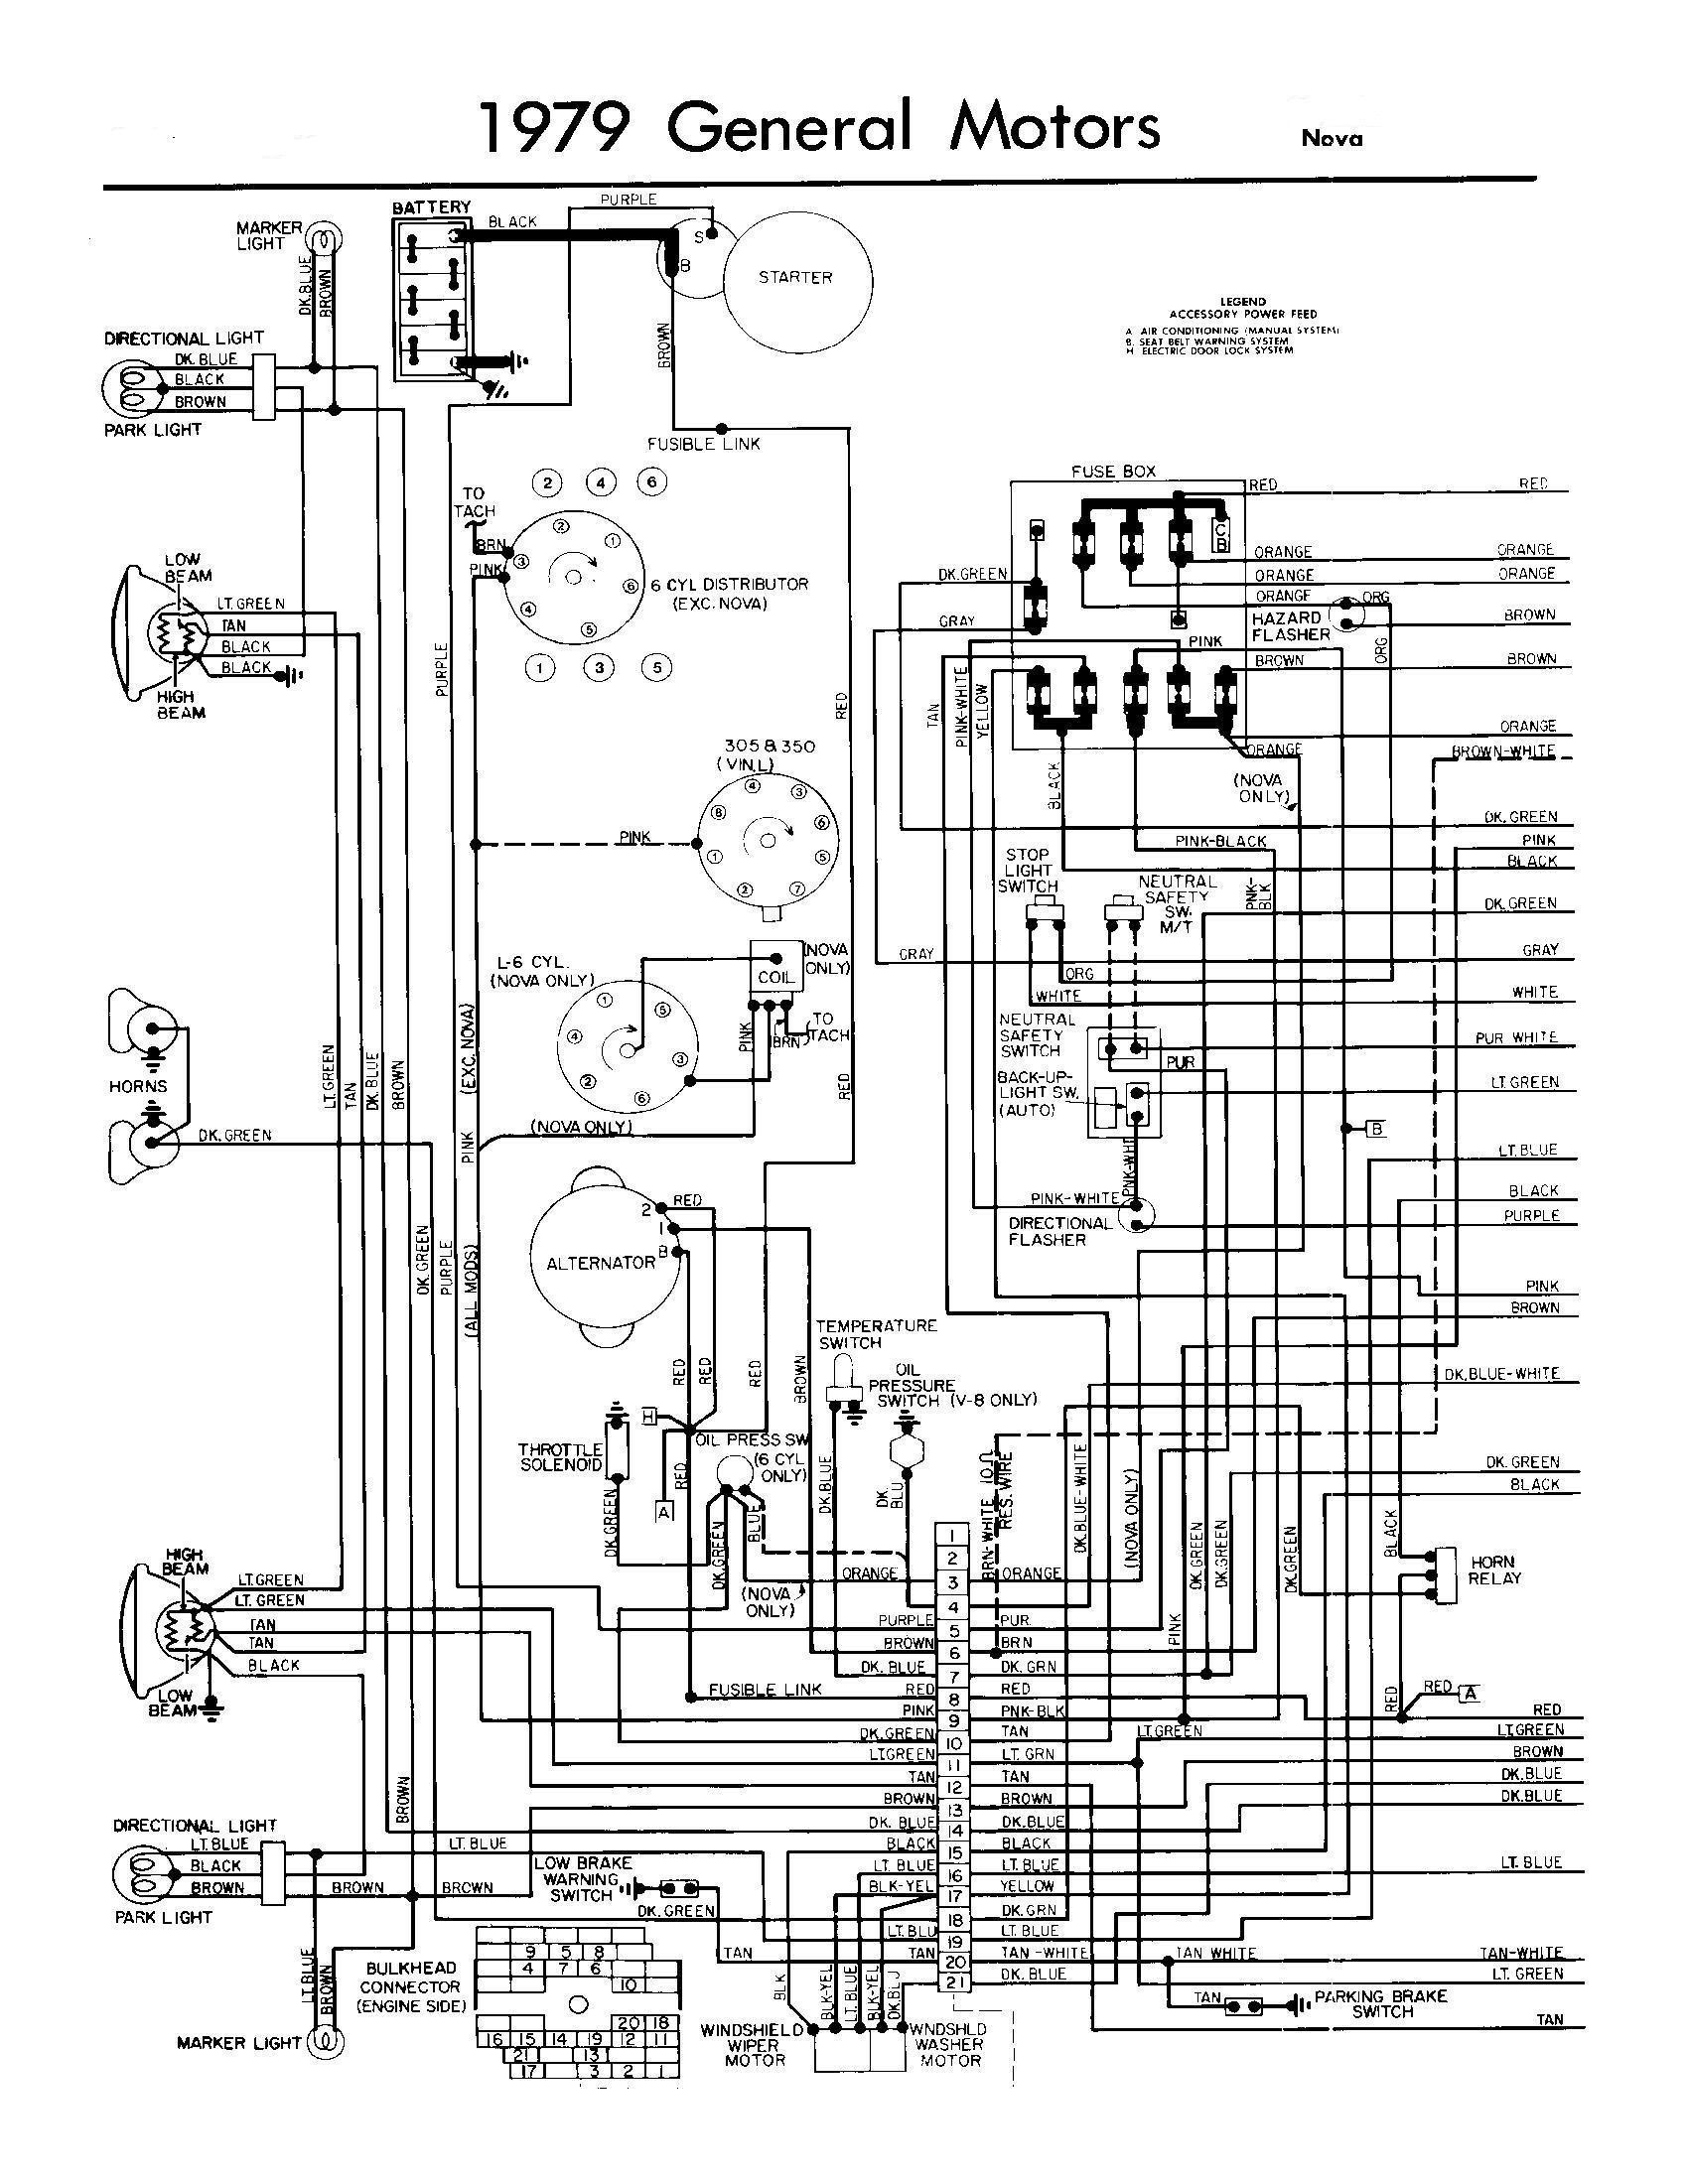 73 nova wiring diagram general wiring diagram information u2022 rh  velvetfive co uk 72 nova fuse box 1970 nova fuse box